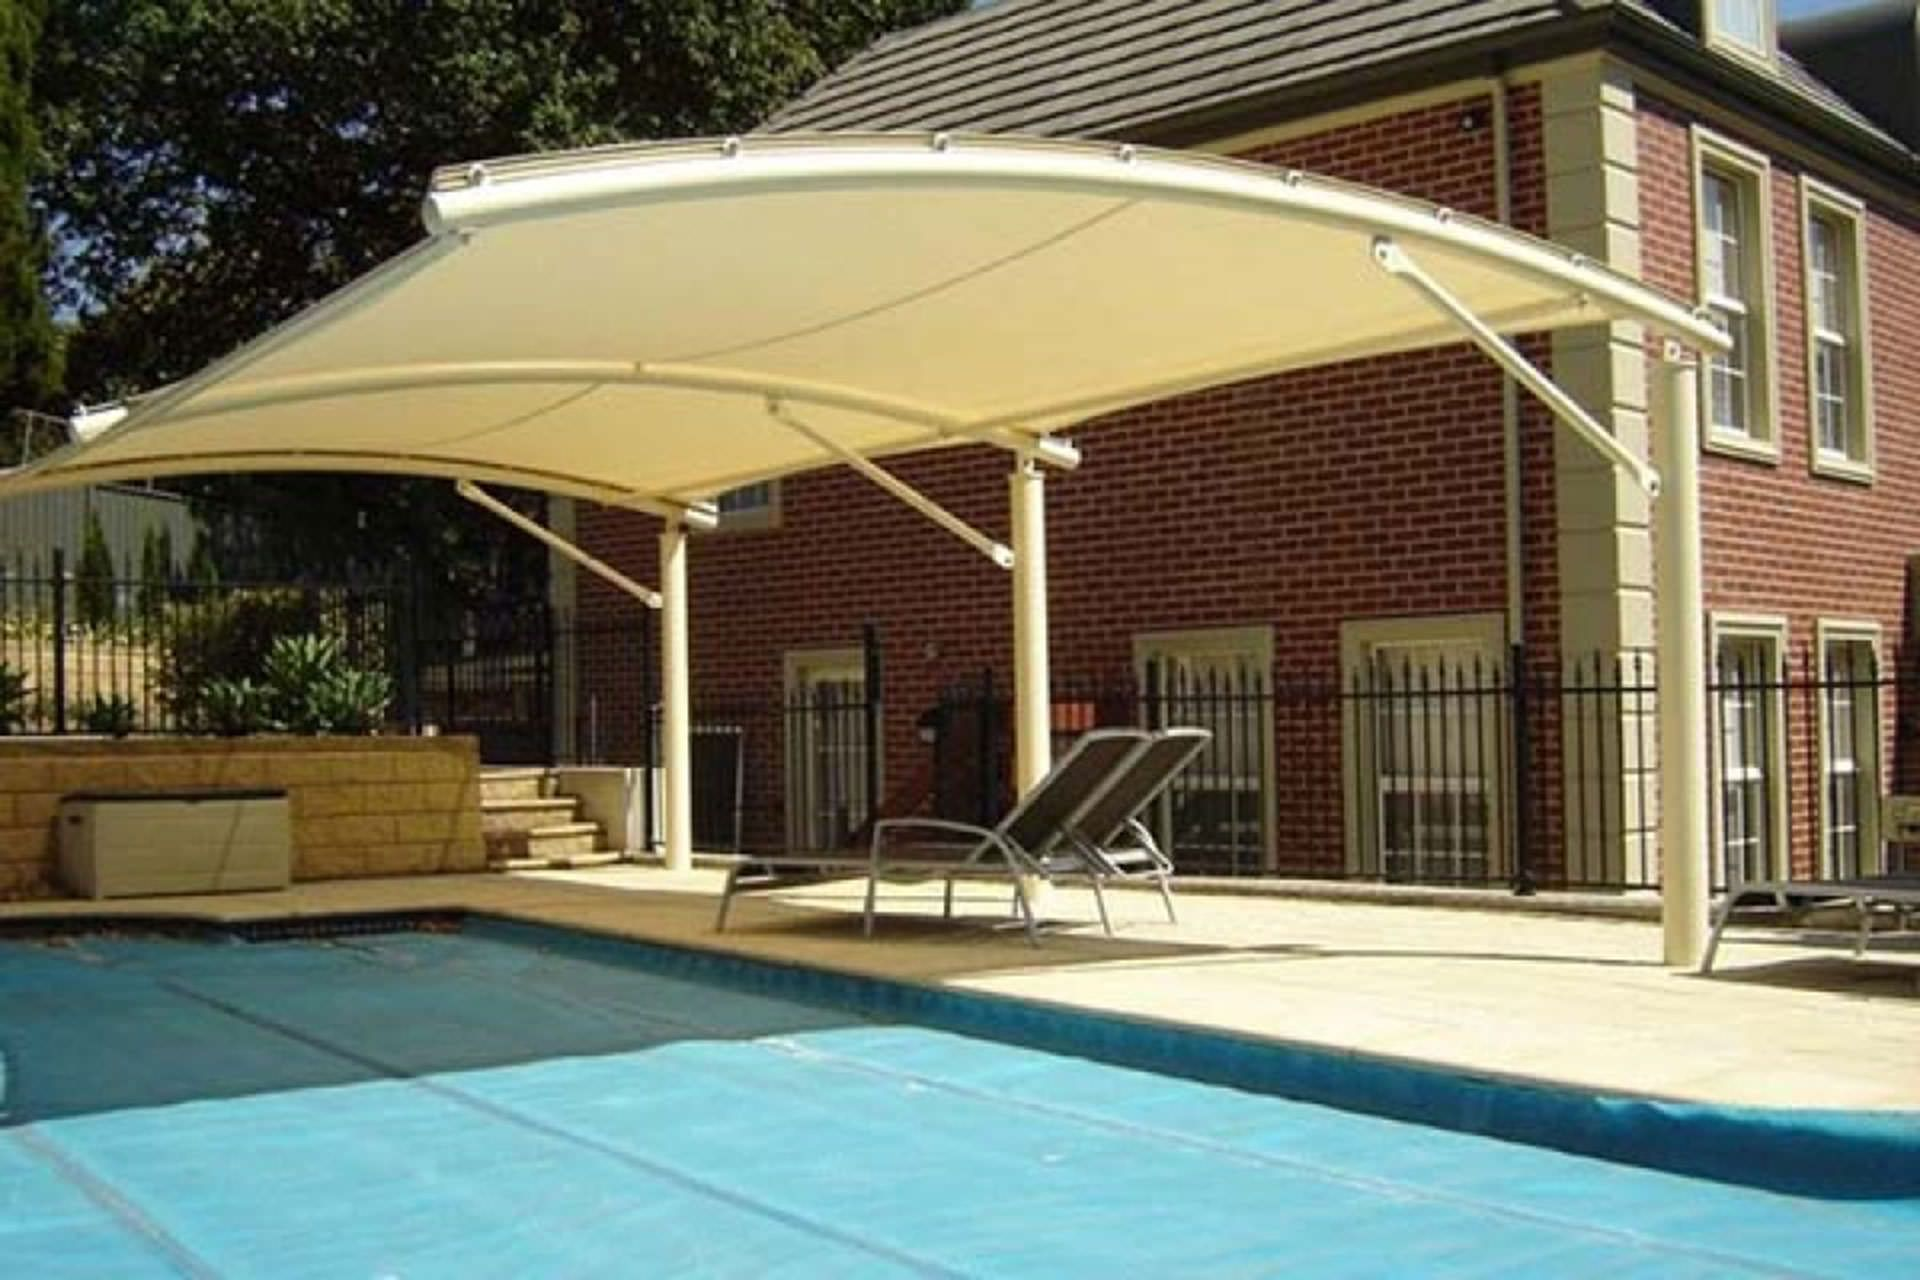 Pool Shade Ideas Cantilevered | Landscaping & Outdoor Structures ...